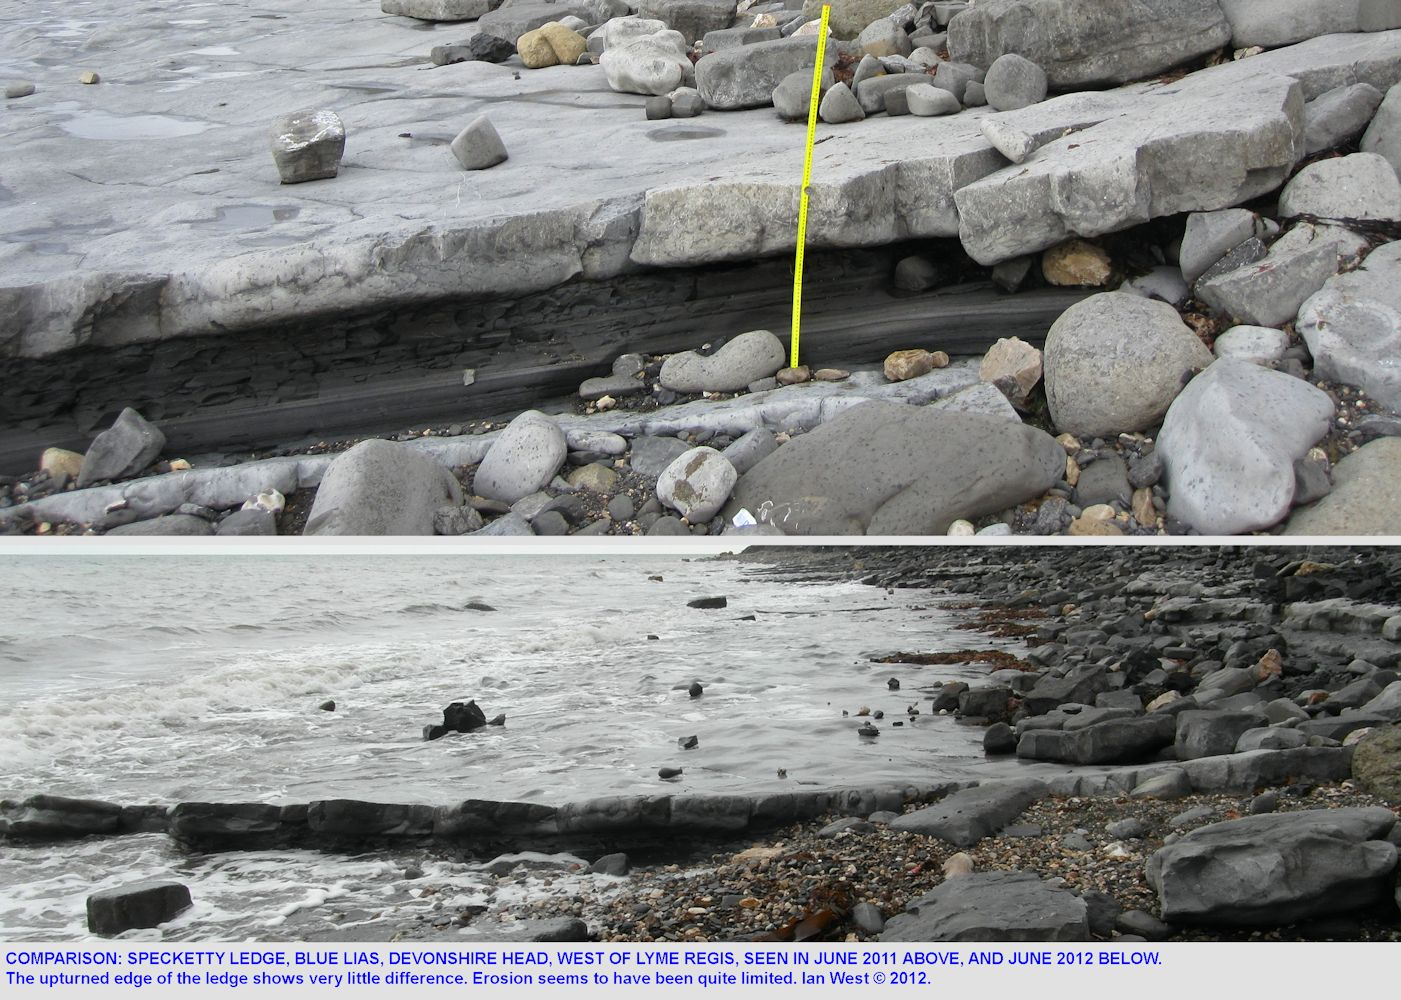 Comparison of Specketty Ledge, Devonshire Head, in June 2011 and June 2012, west of Lyme Regis, Dorset